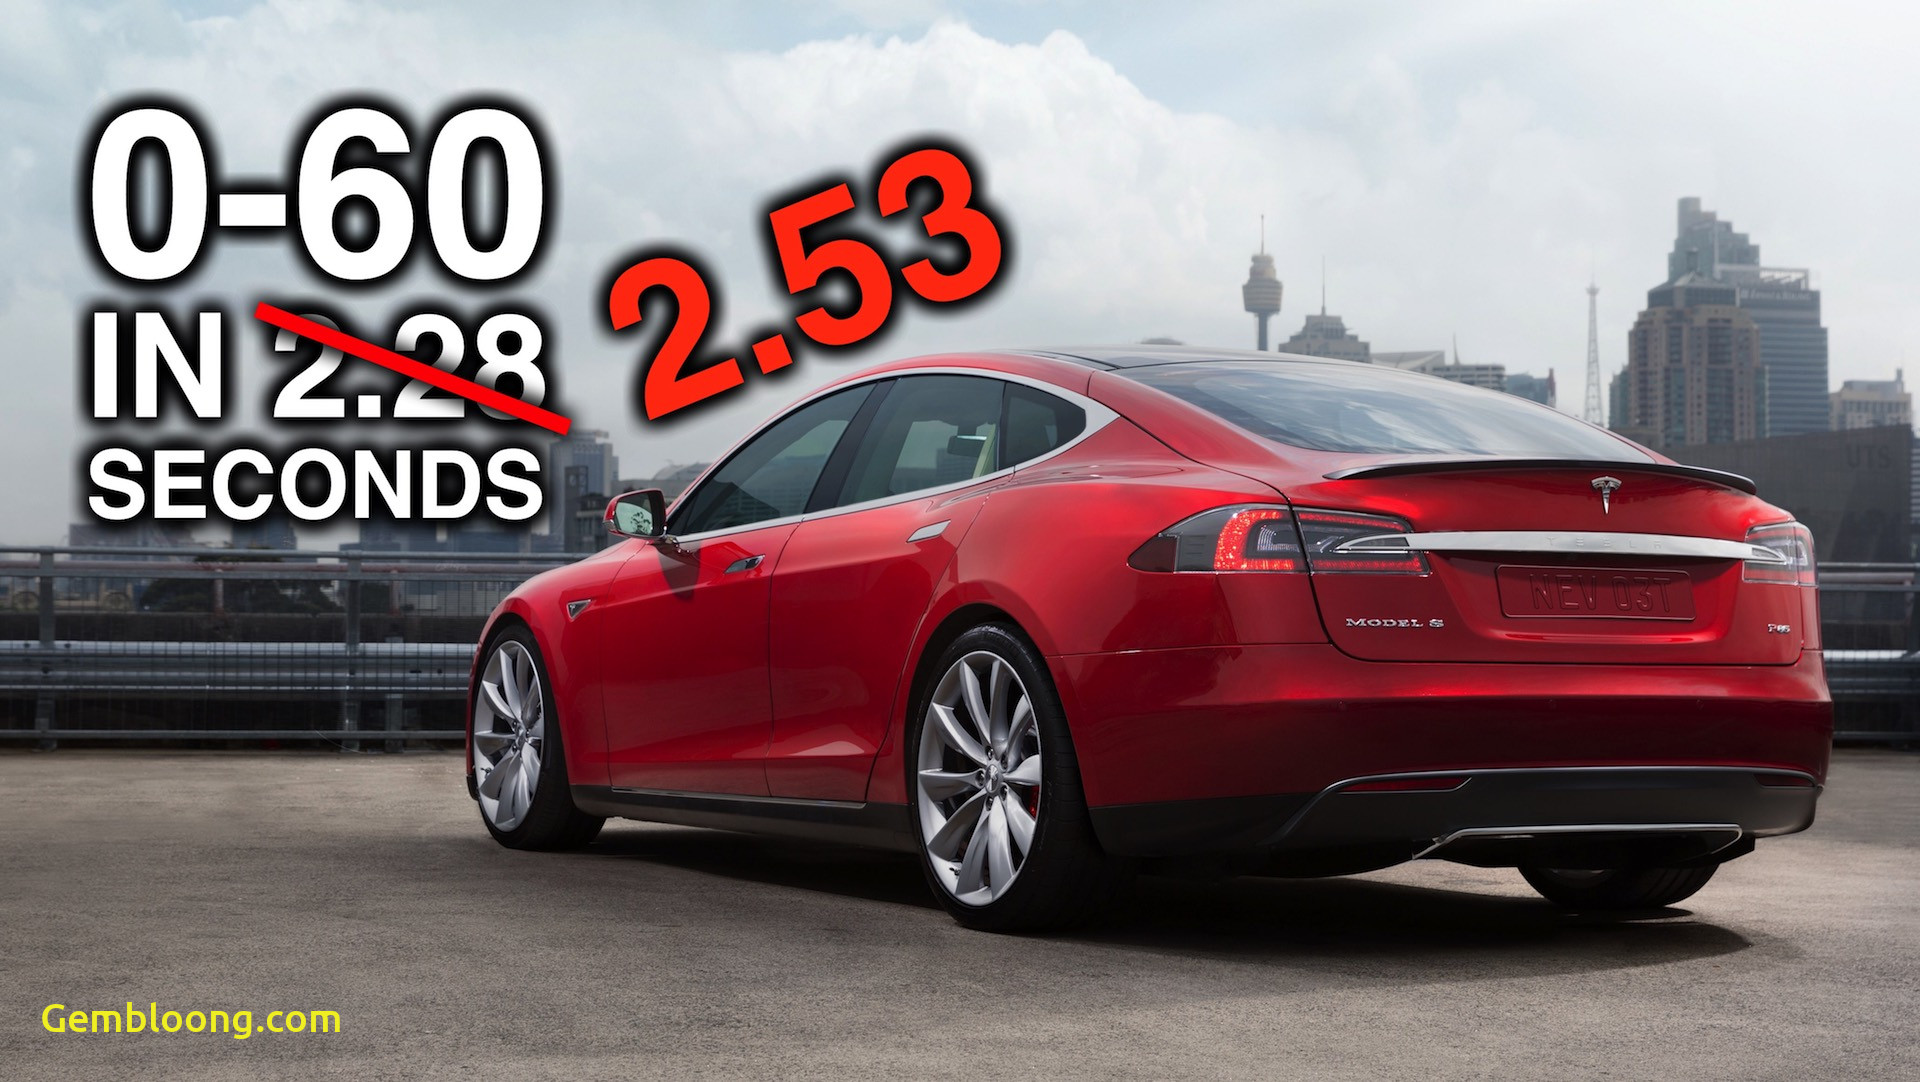 Tesla 0-60 Luxury No the Tesla Model S P100d Doesnt Do 0 60 In 2 28 Seconds